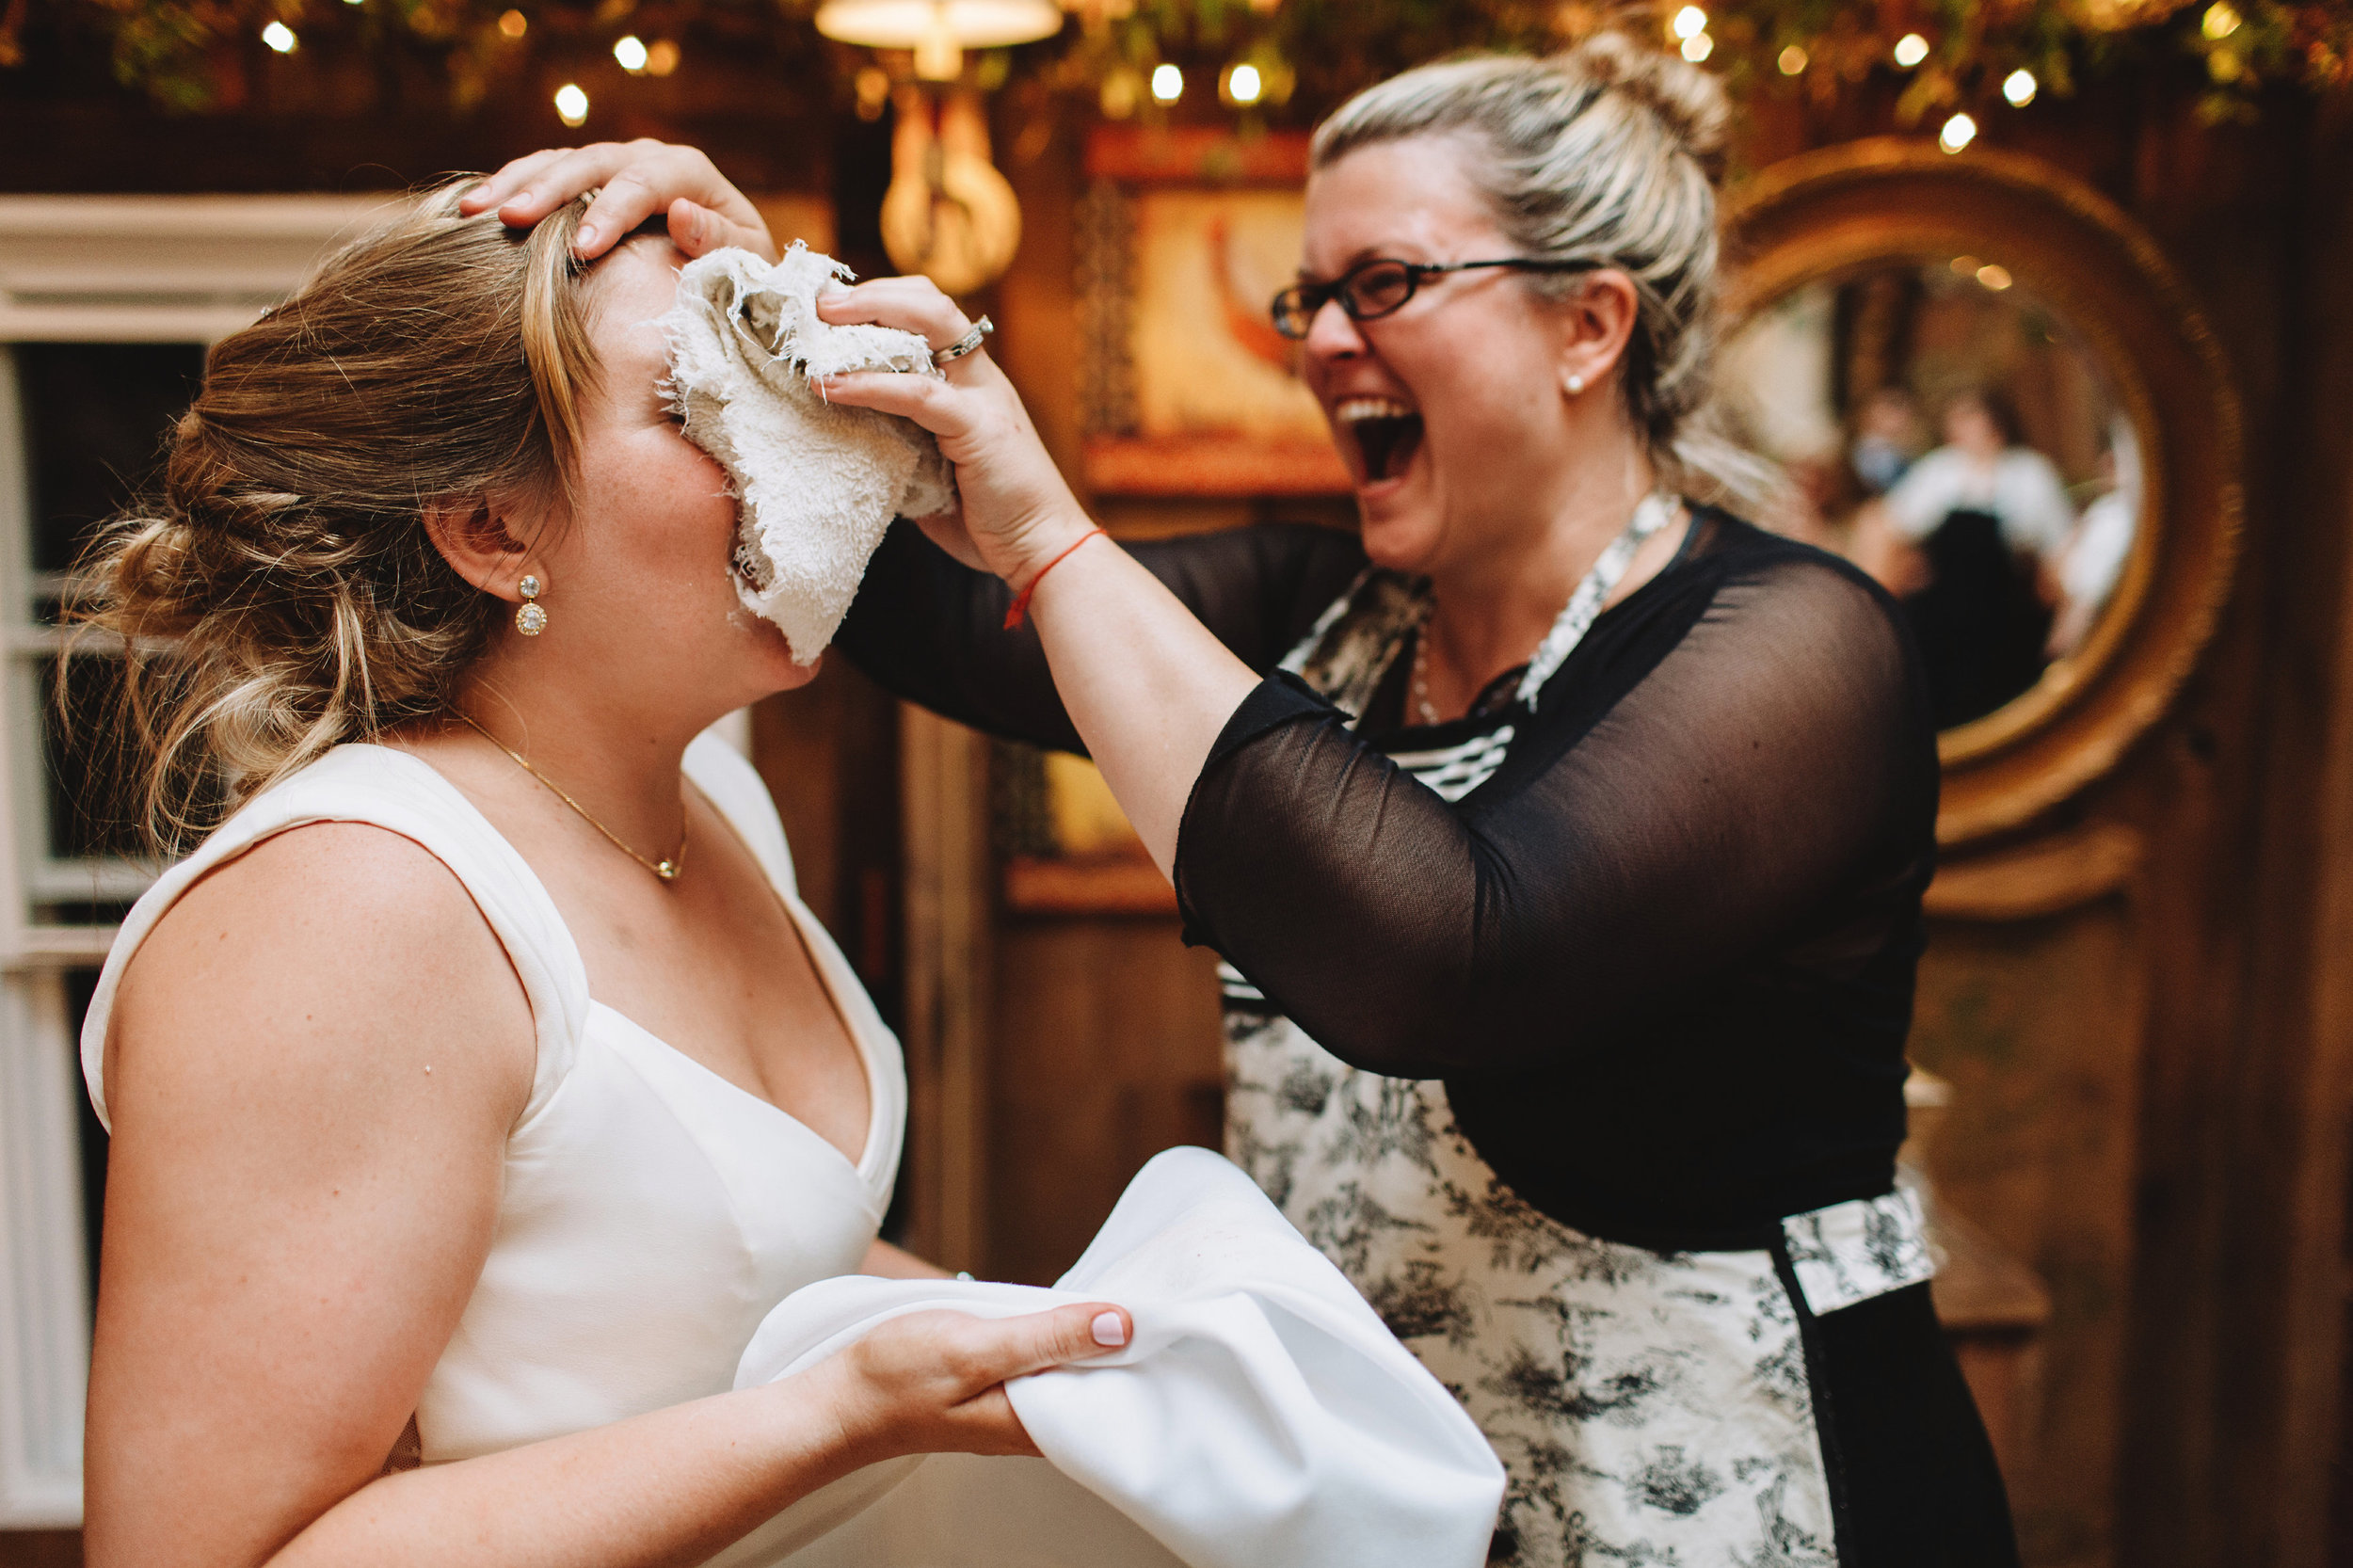 Chanteclaire Owner Leigh Clarke helps a bride clean up after her new husband was enthusiastic with the wedding cake  Photo credit: With Love & Embers Photography